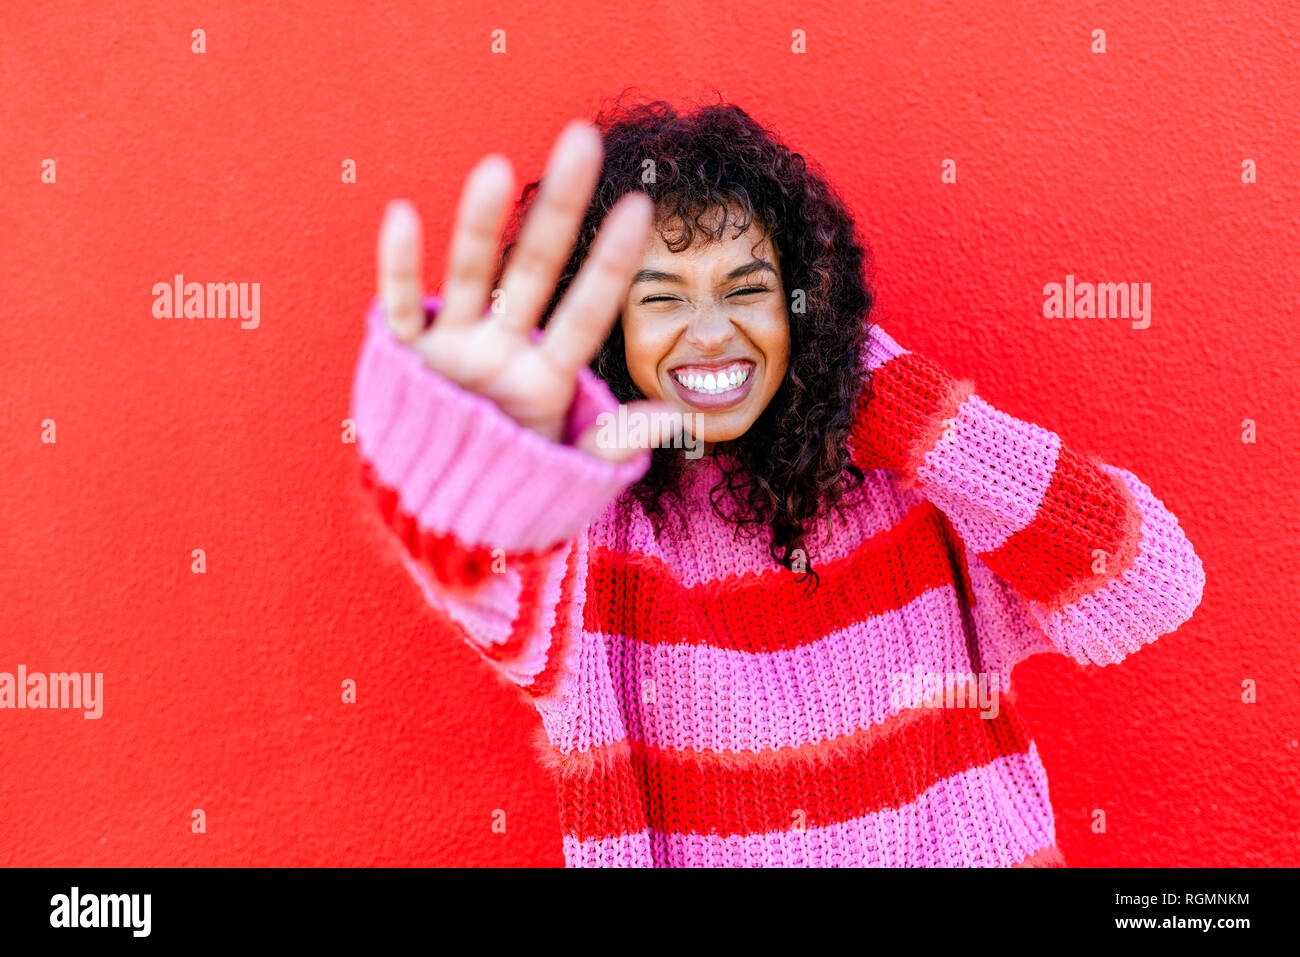 Portrait of laughing young woman in front of red wall - Stock Image